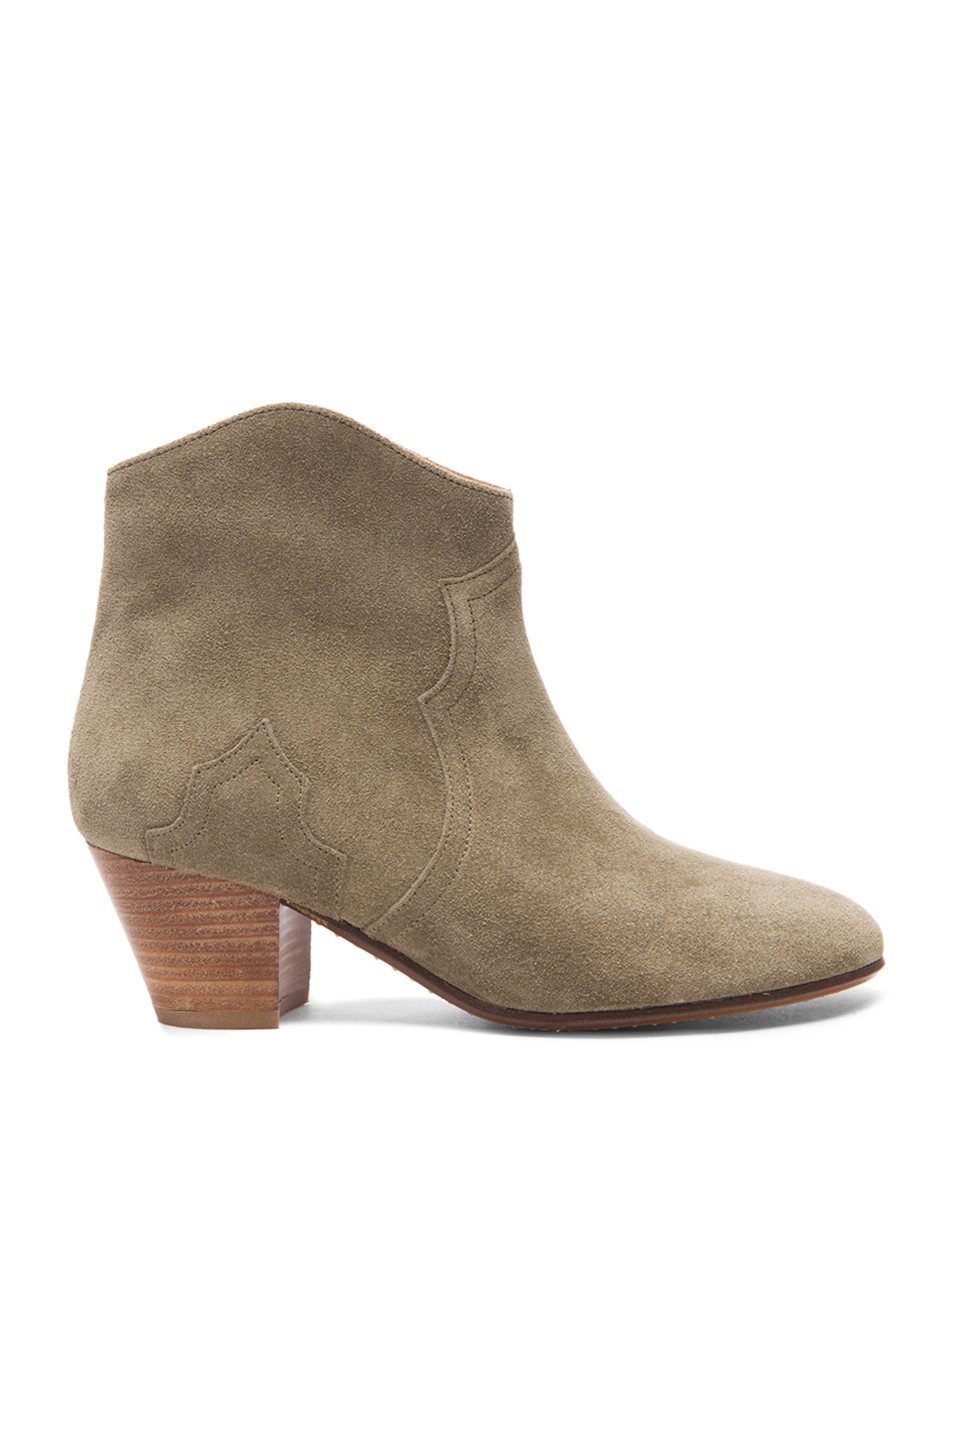 Isabel Marant Etoile 50mm Dicker Suede Ankle Boots, Taupe